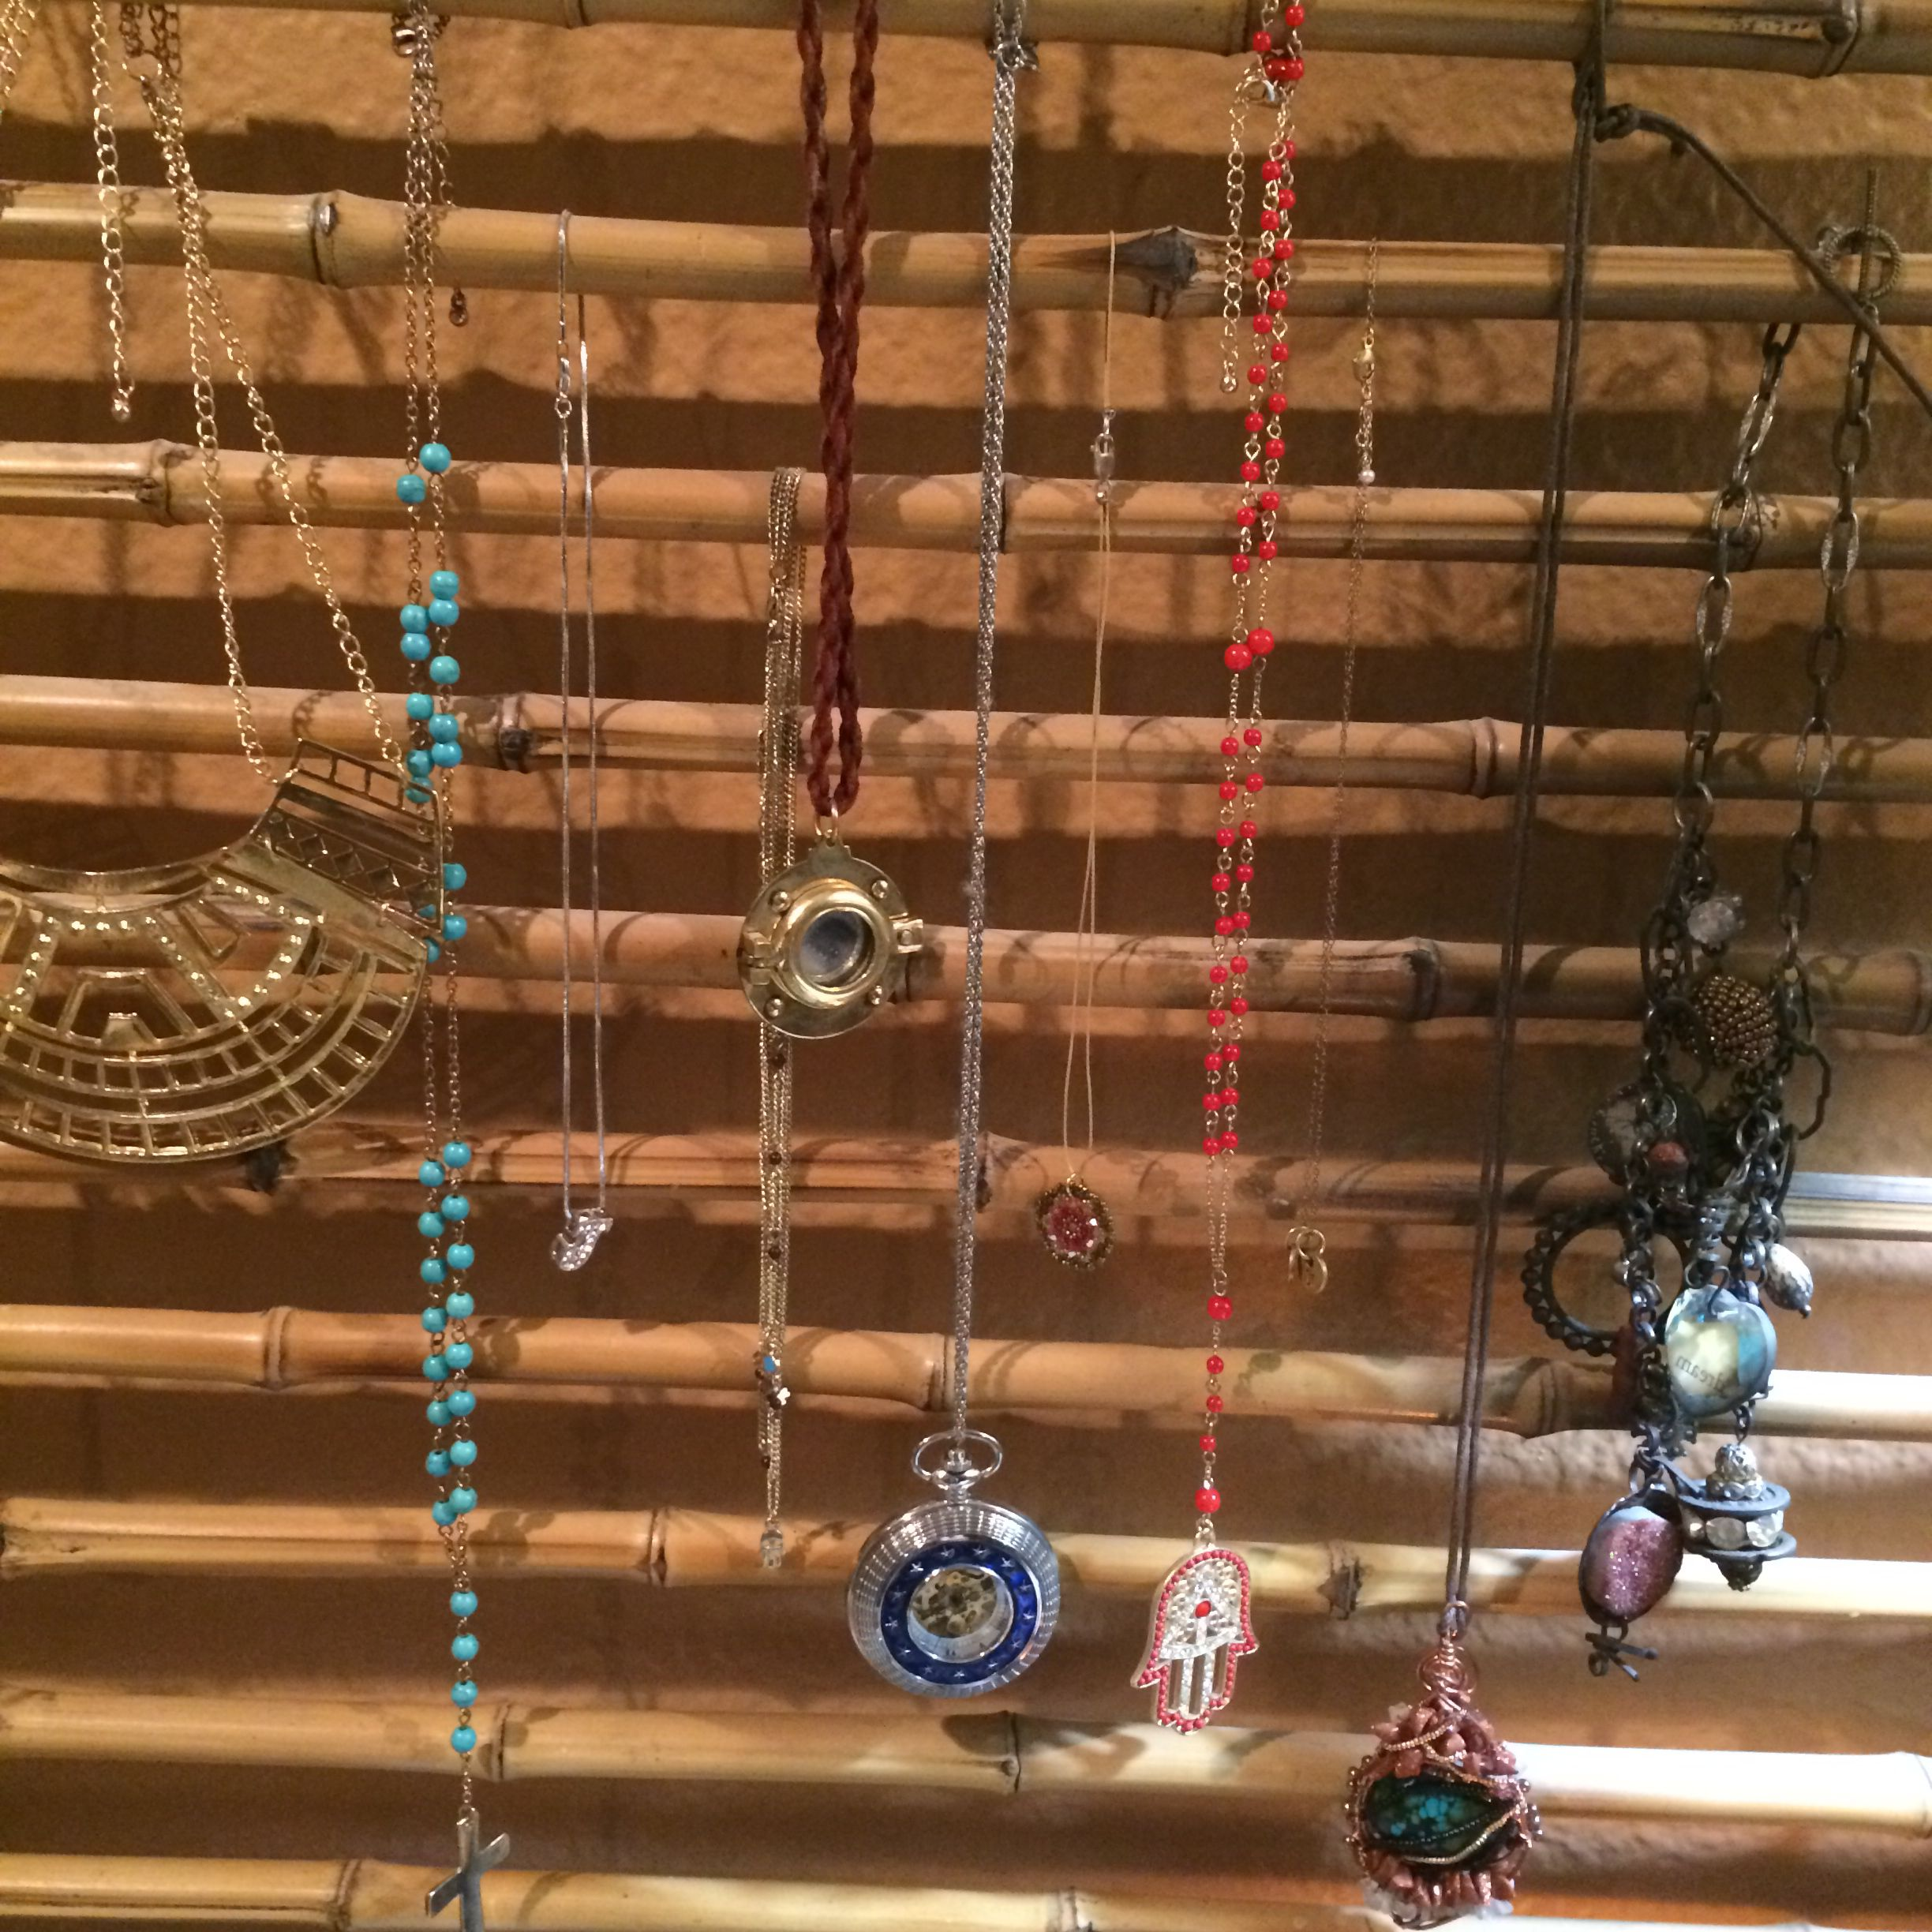 Love hanging necklaces on this frame made from rows of bamboo.